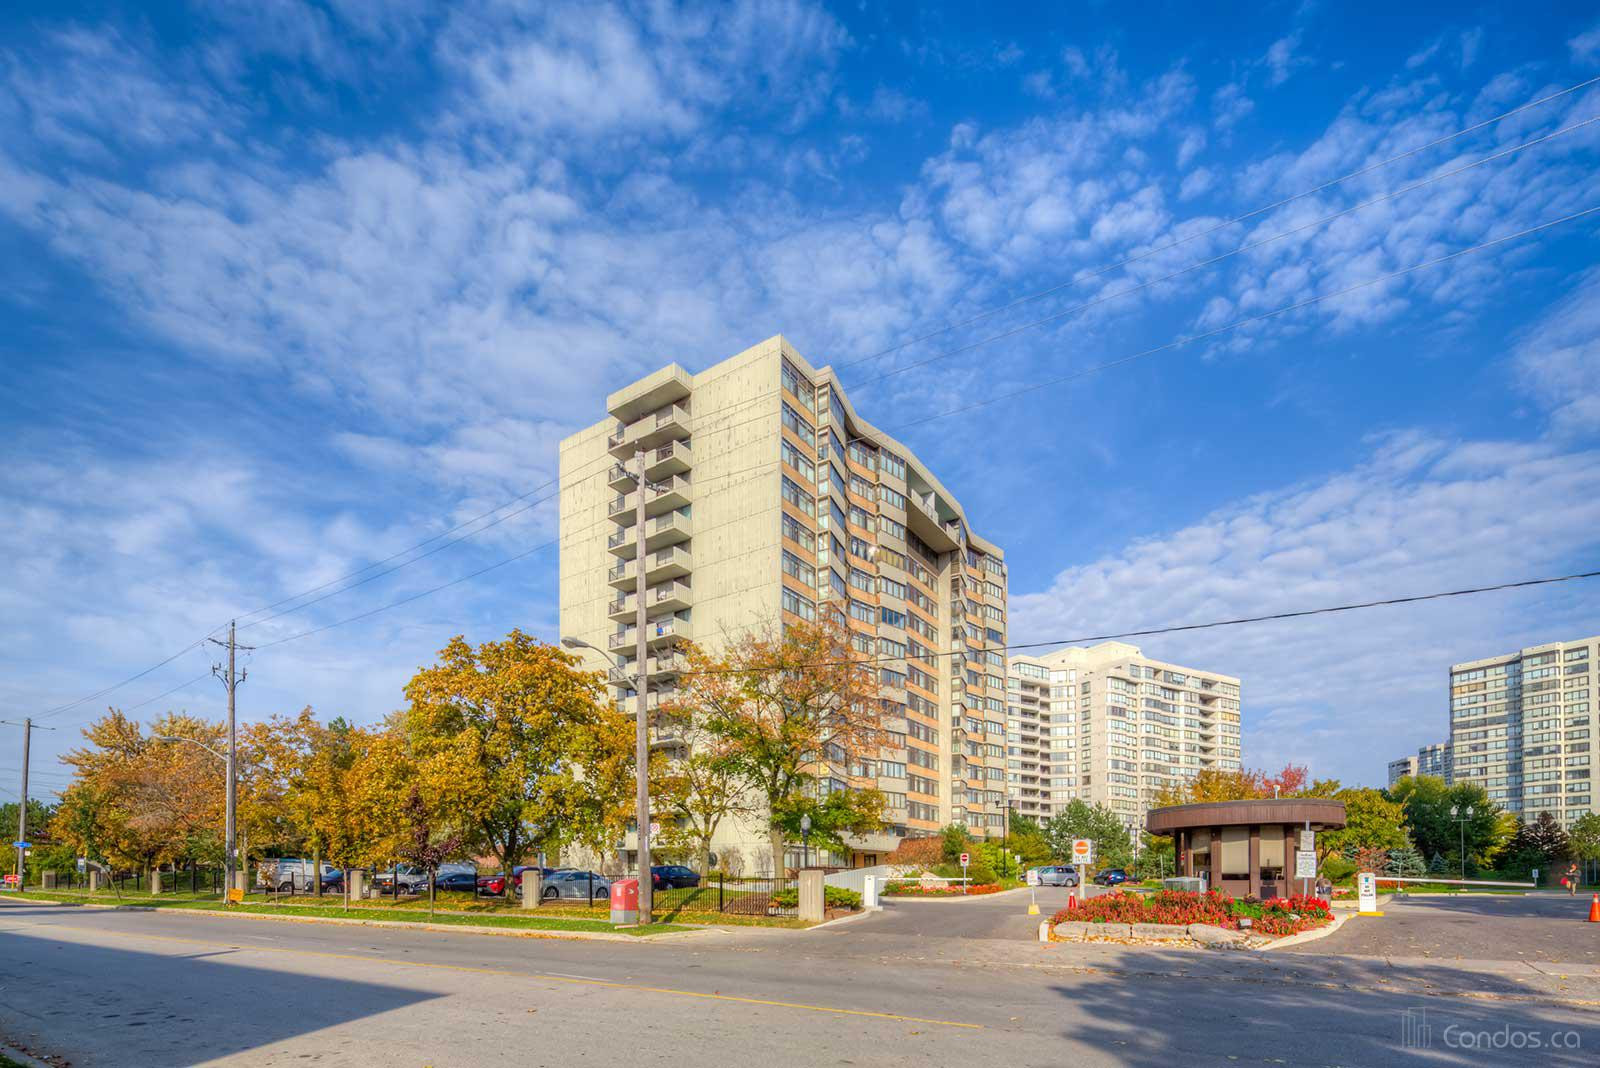 The Courtlands at 1201 Steeles Ave W, Toronto 1